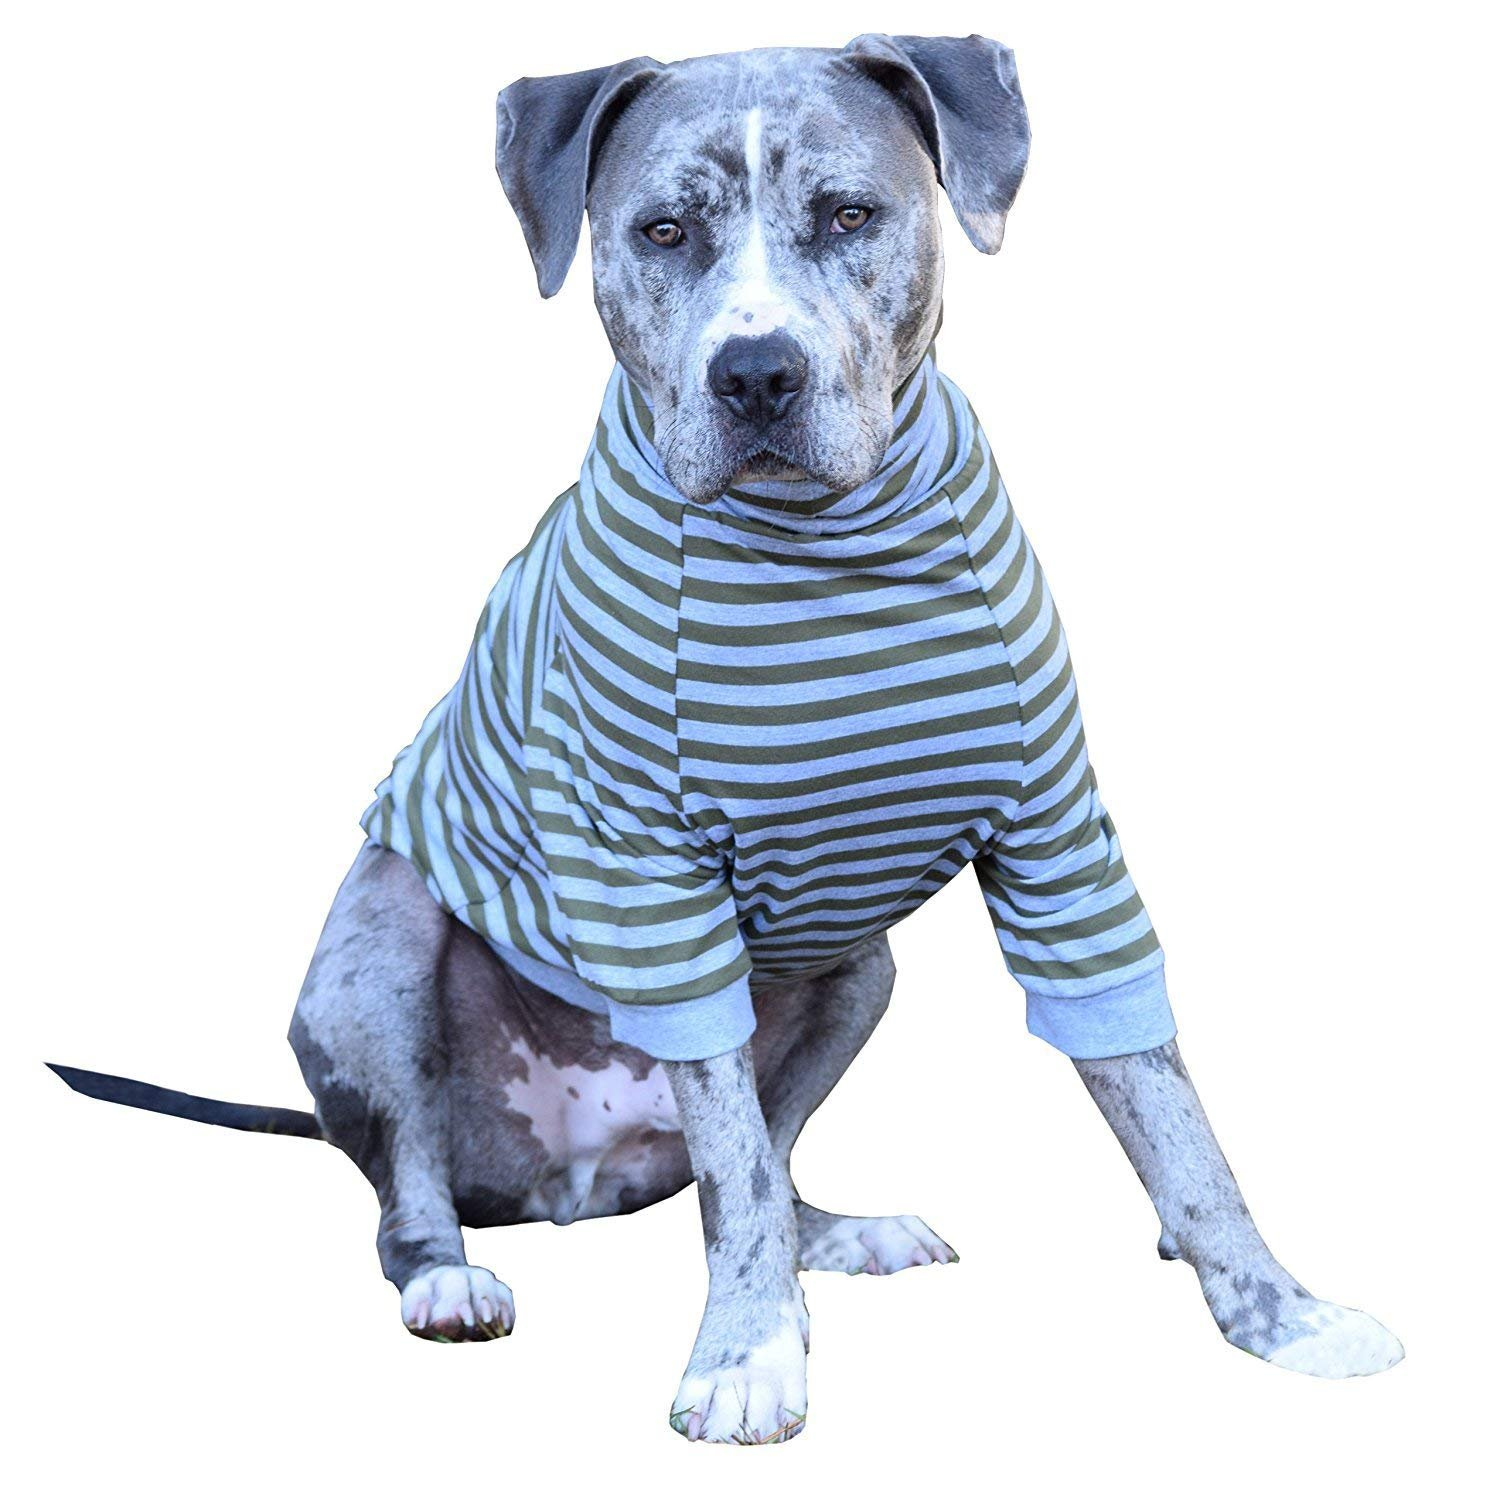 Tooth & Honey Big Dog/Stripe Shirt/Pullover/Full Belly Coverage/for Big Dogs/Pitbull Shirt/Olive and Grey (Extra Large) by Tooth & Honey